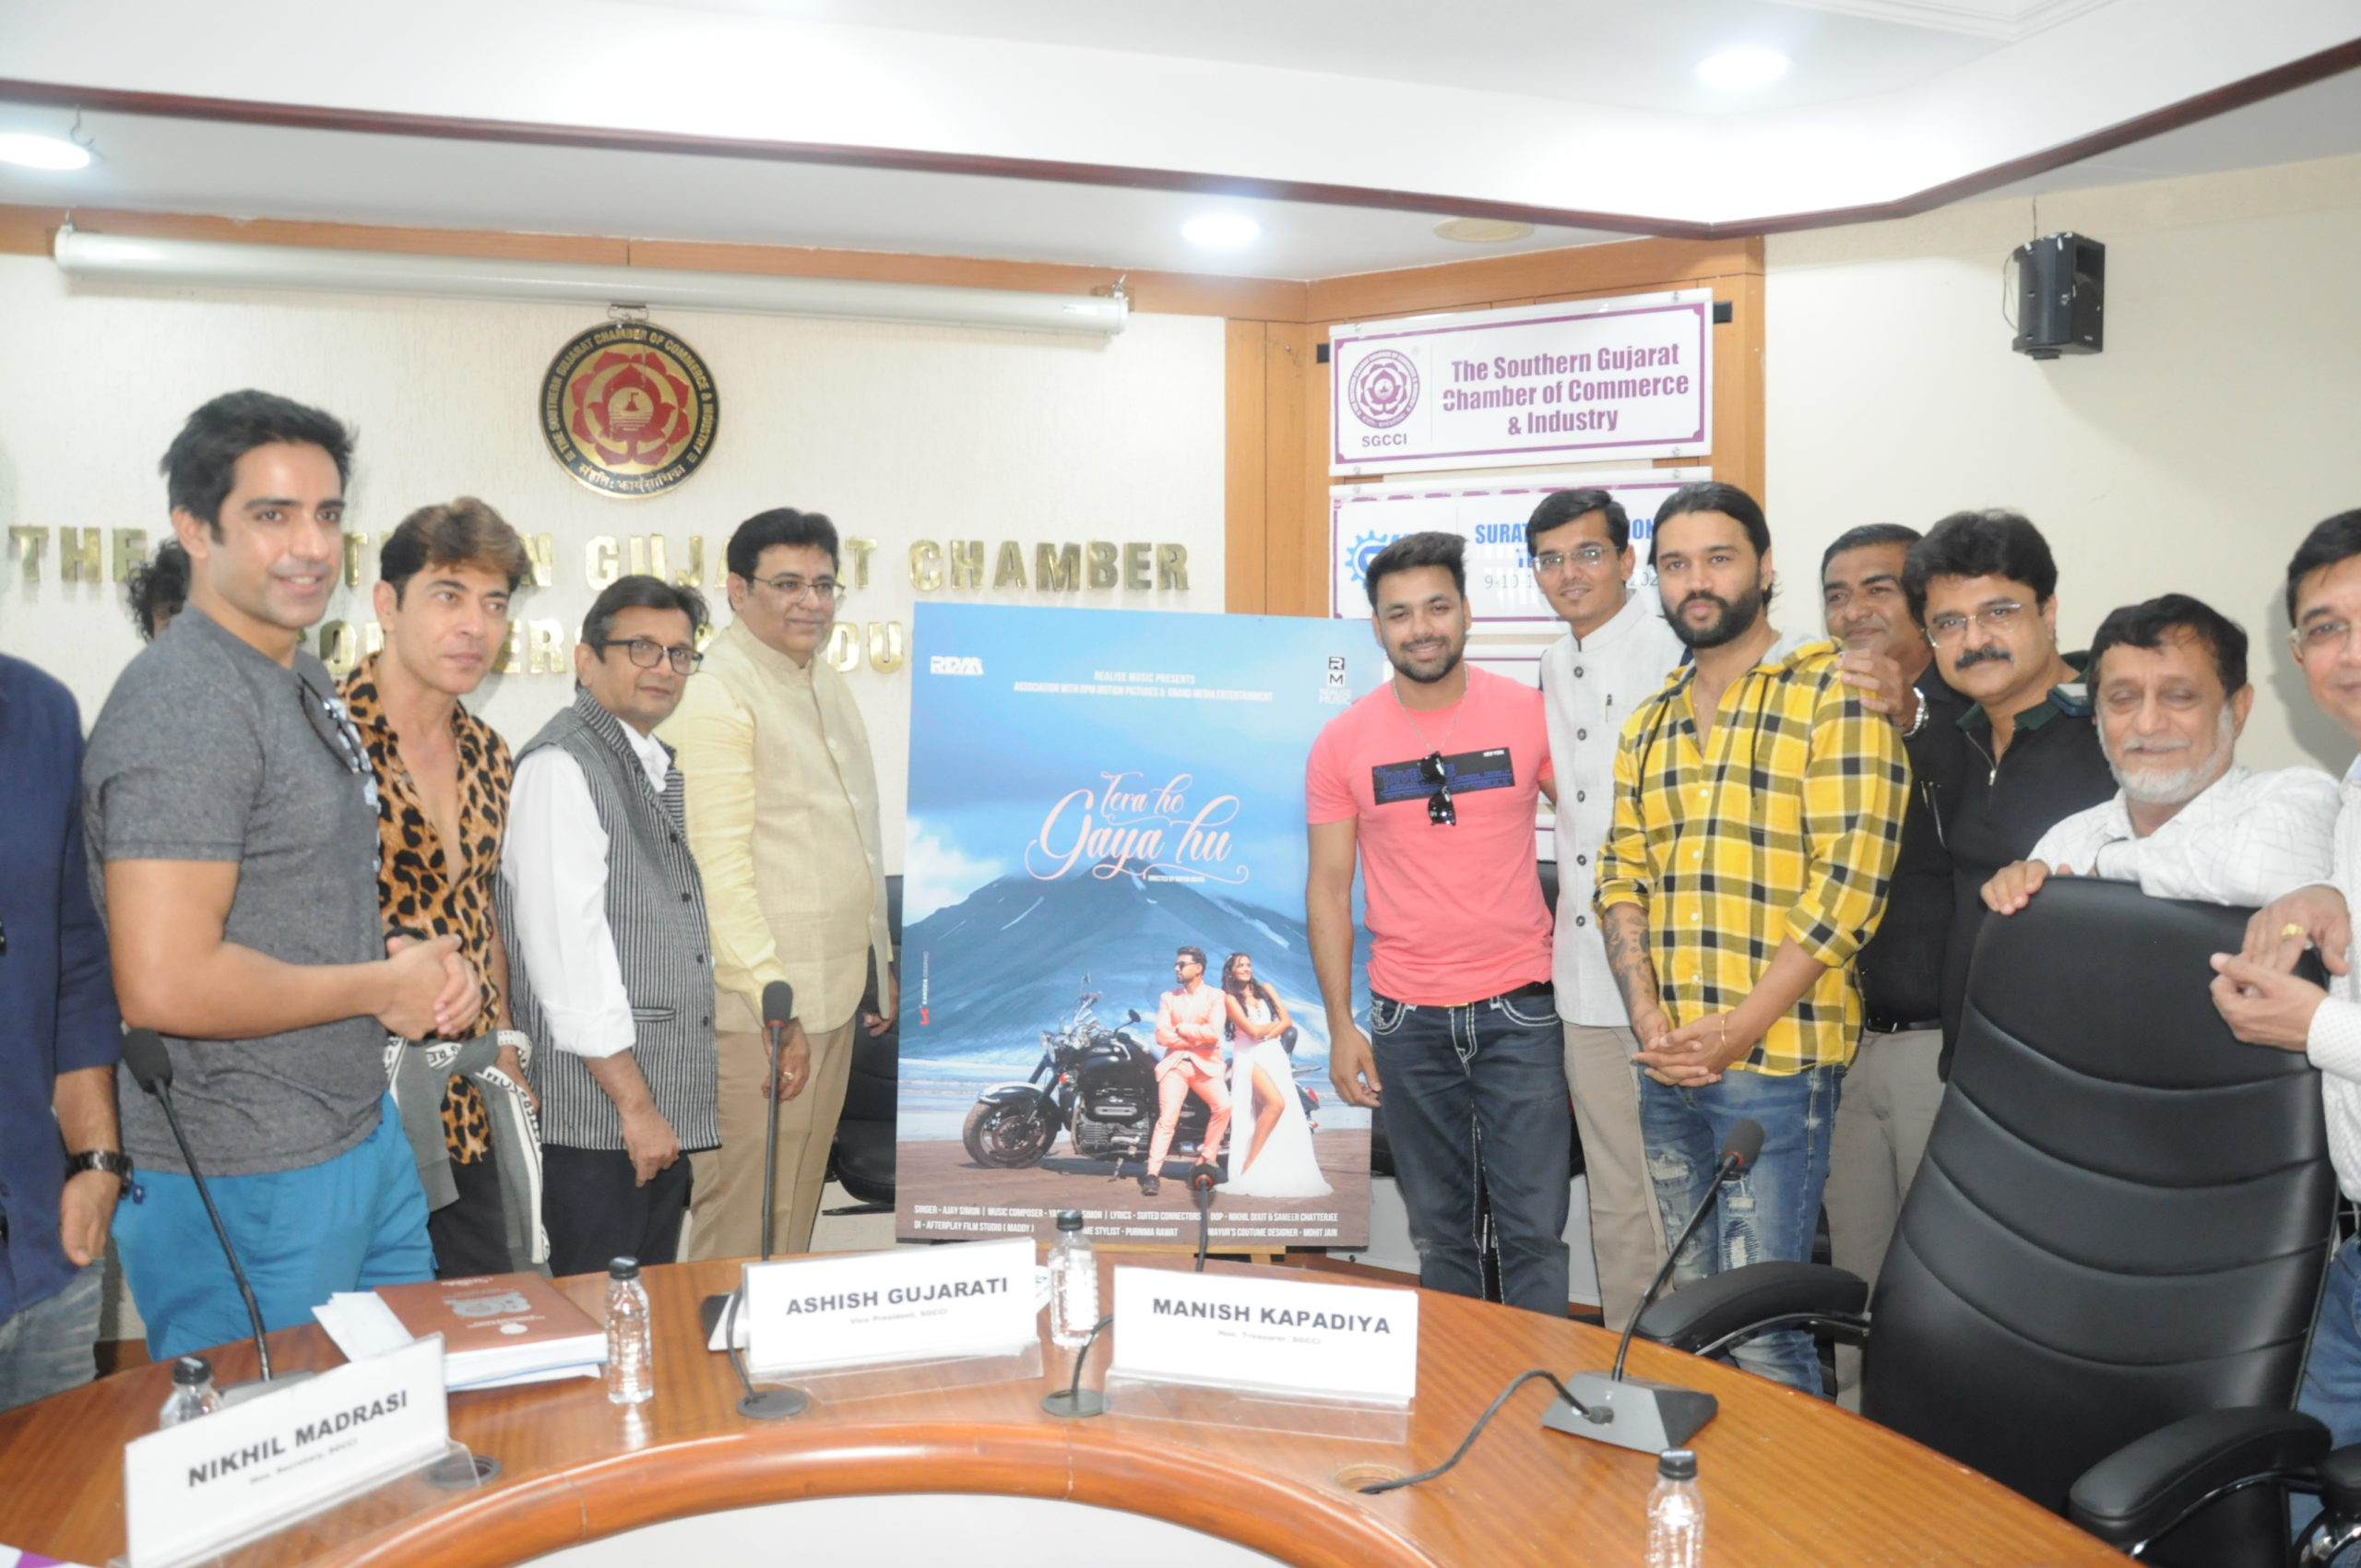 The trident of technology innovation, Industrial excellence, and technology business incubation addressed the press and media